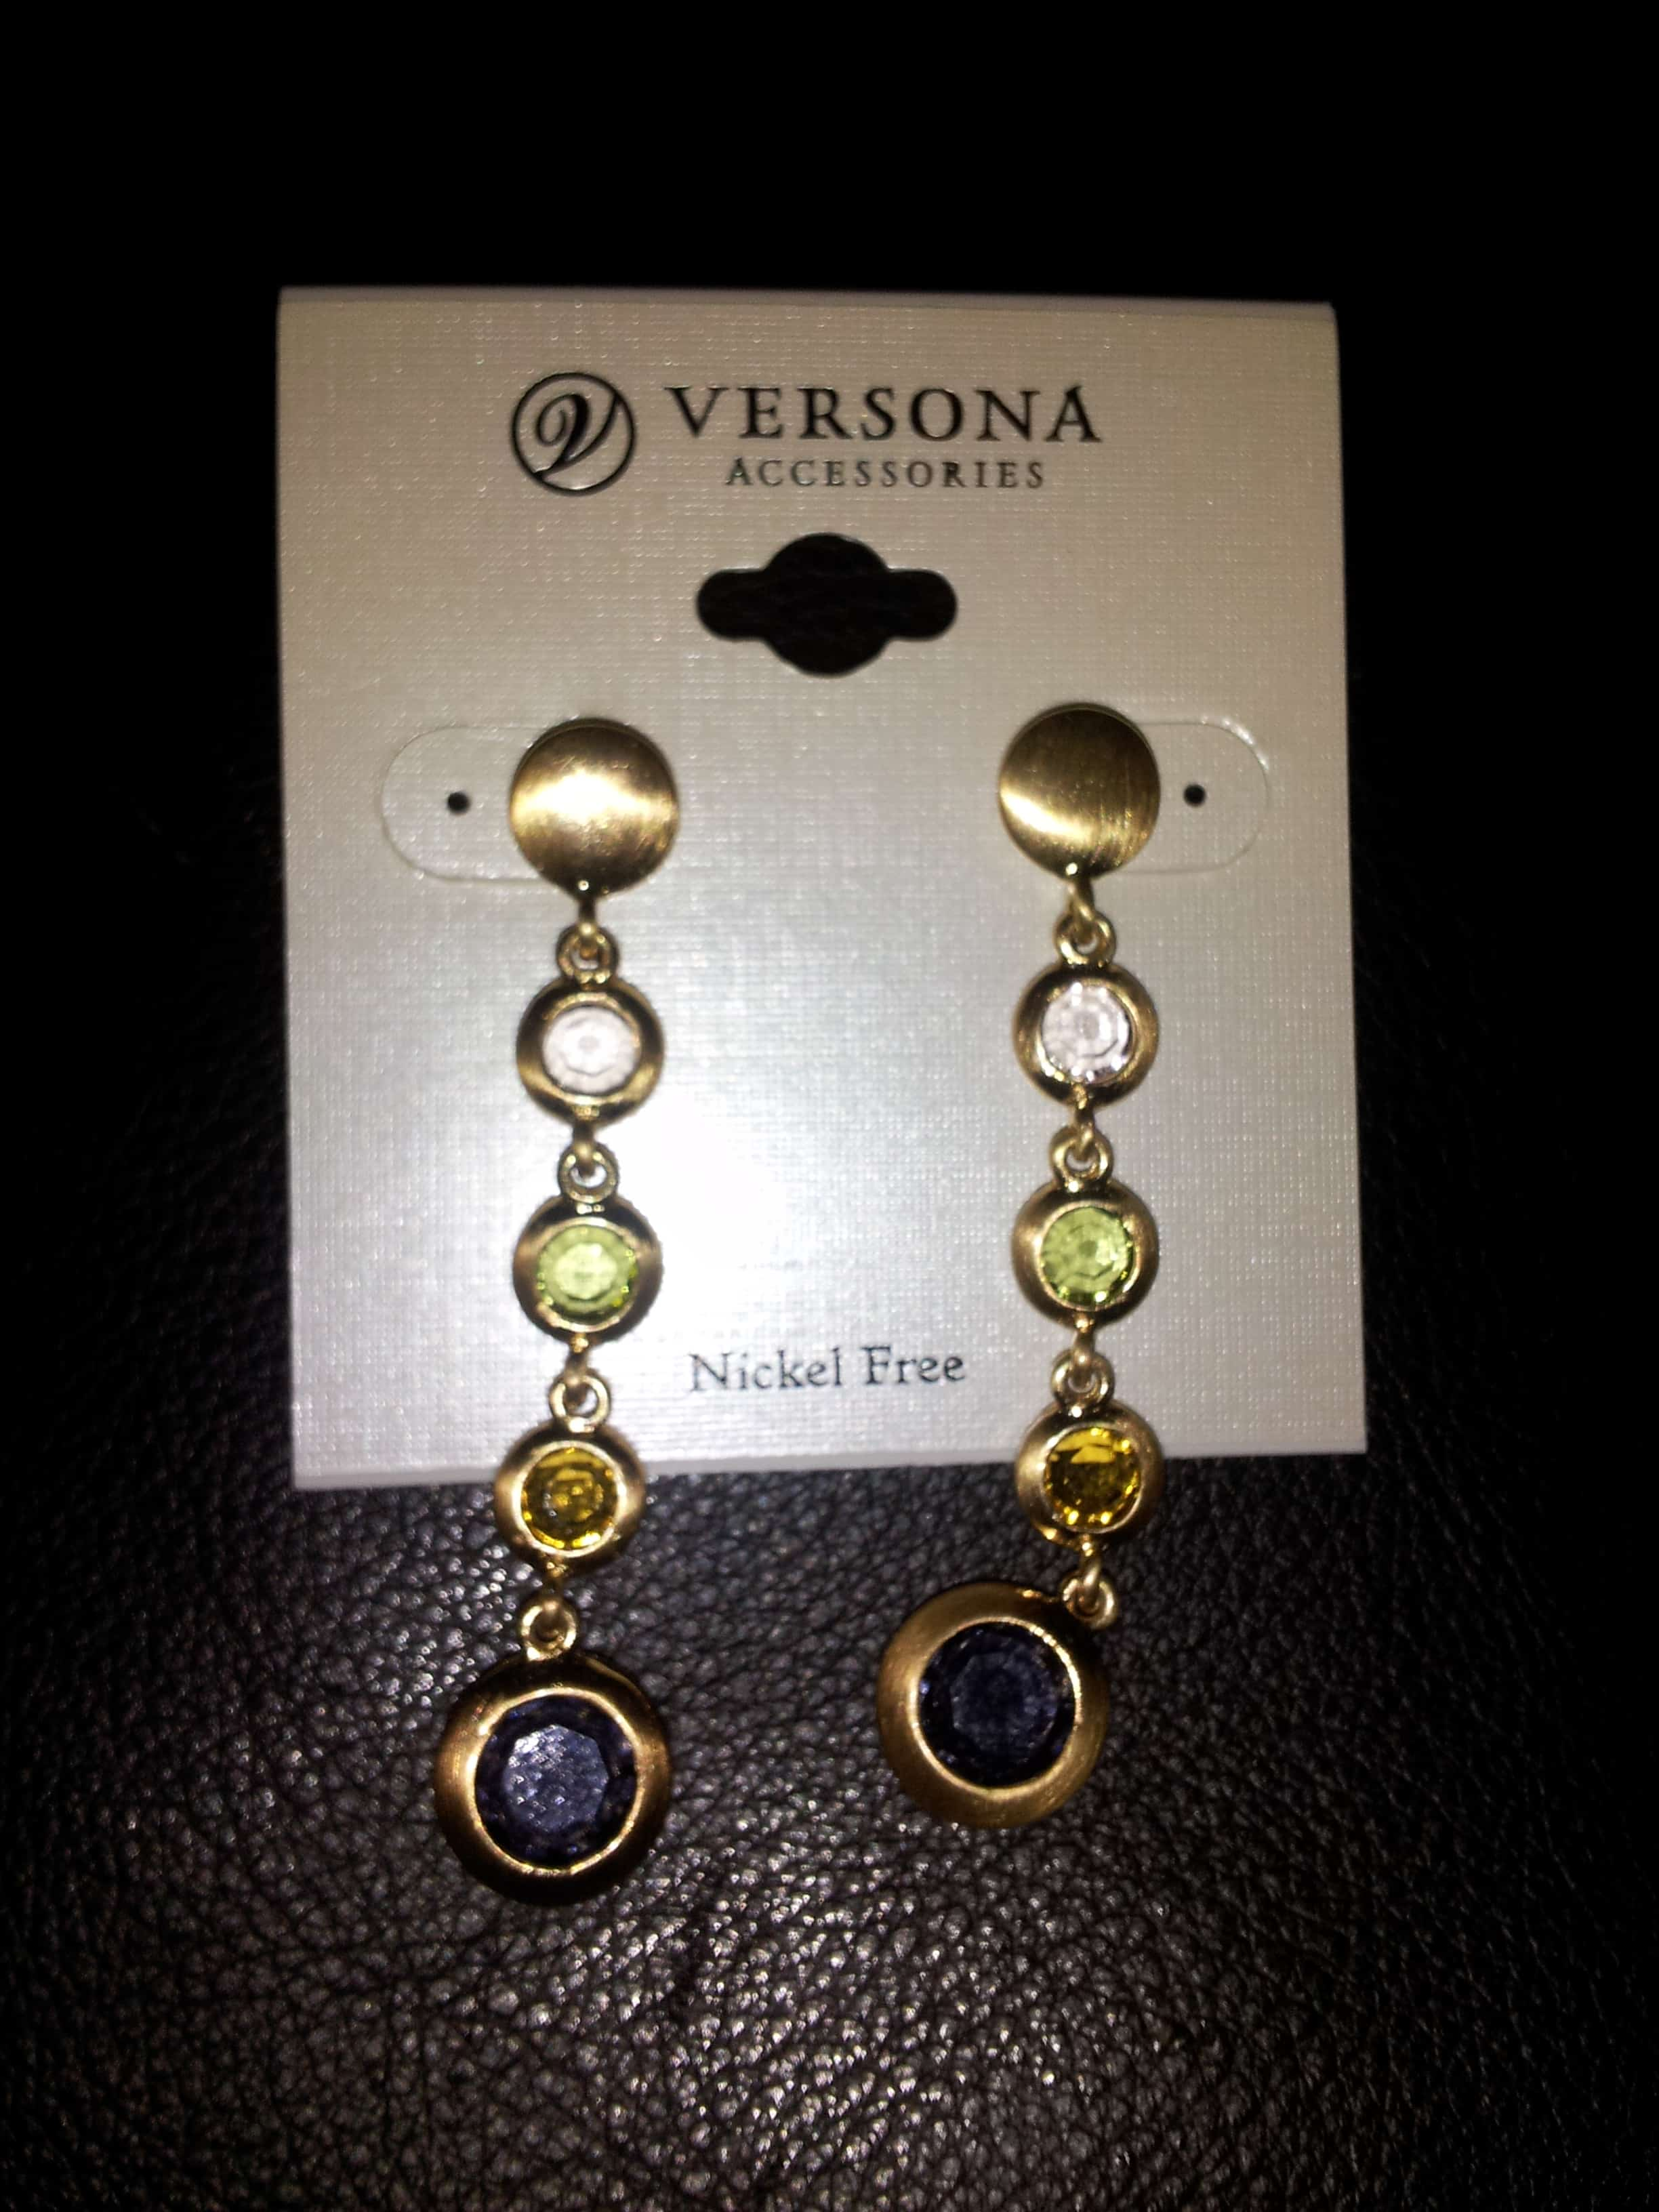 giveaway matching earrings and bracelet from versona